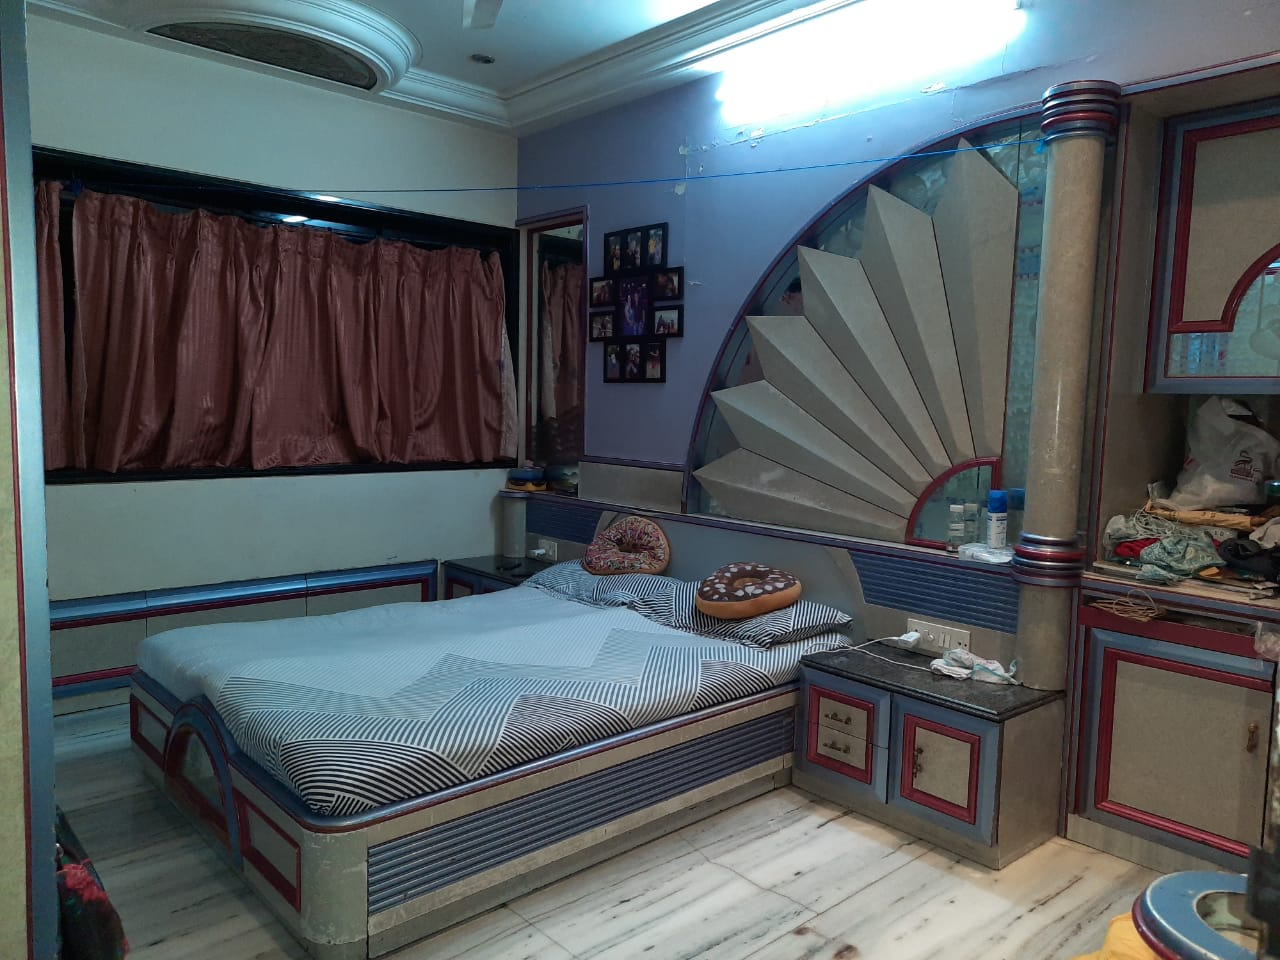 2Bhk for Sale in Dadar West Near Tulsi Pipe Road @3.75